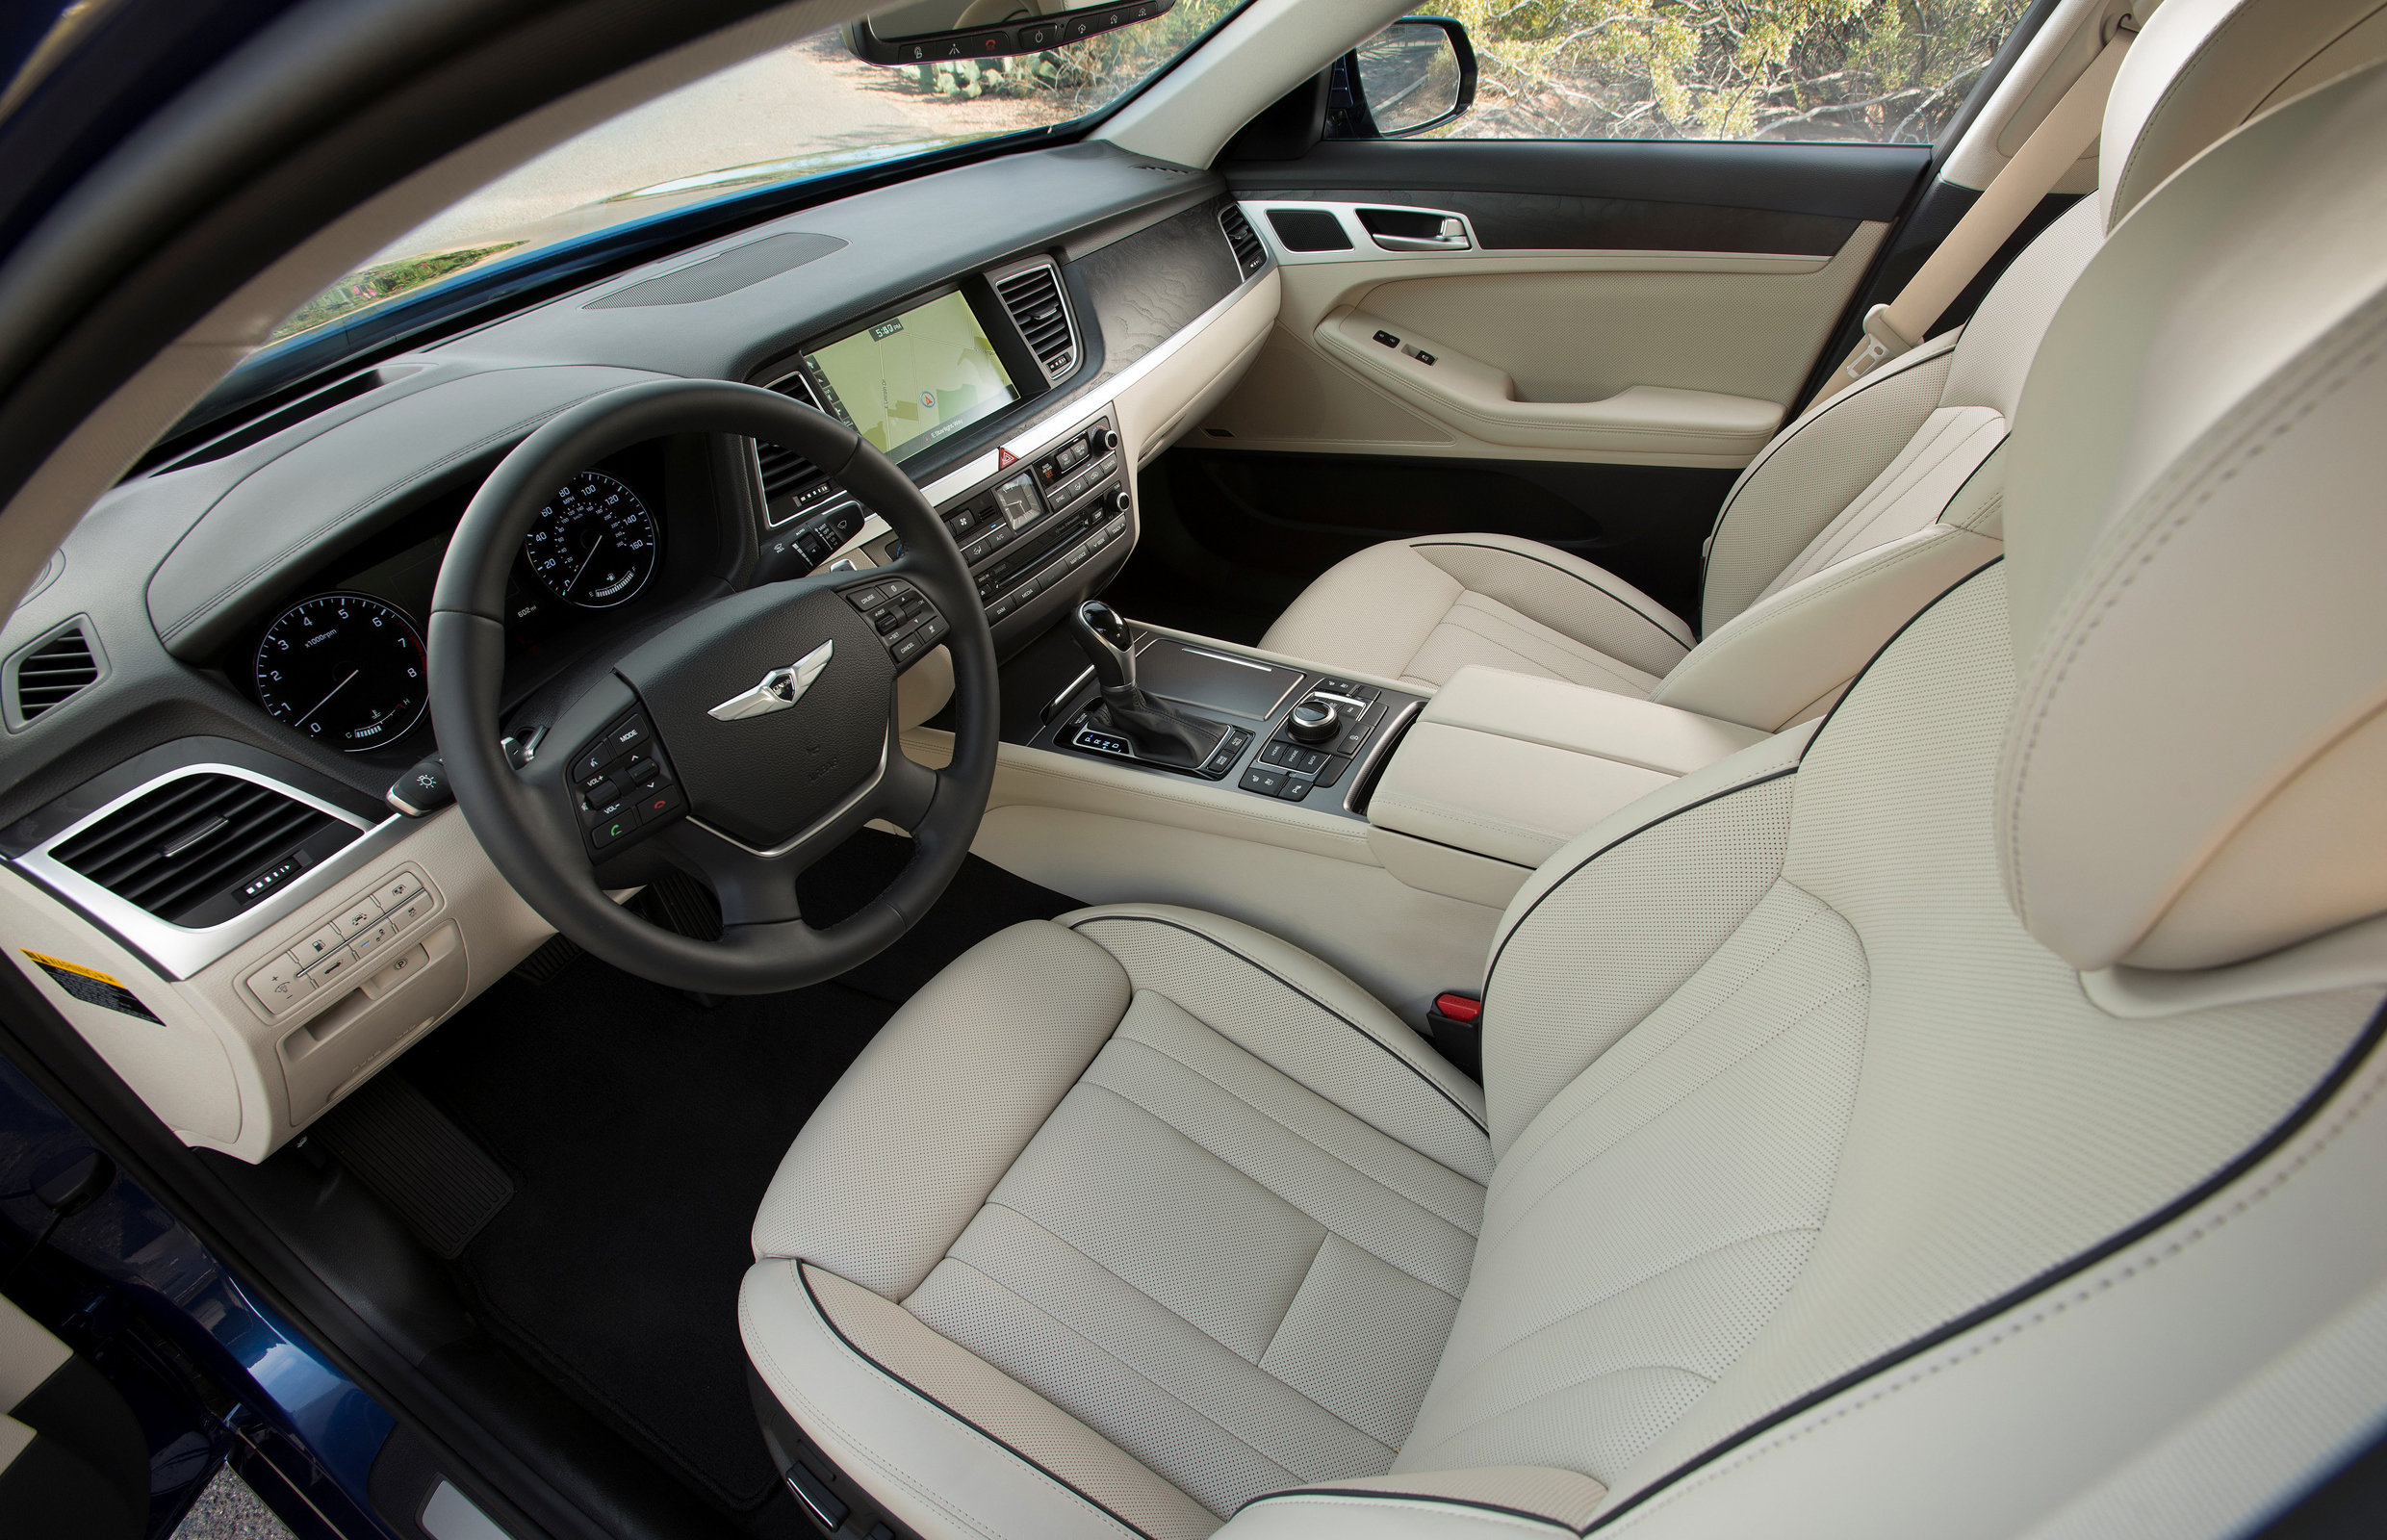 2015 Hyundai Genesis Front Seat Interior (View 4 of 11)